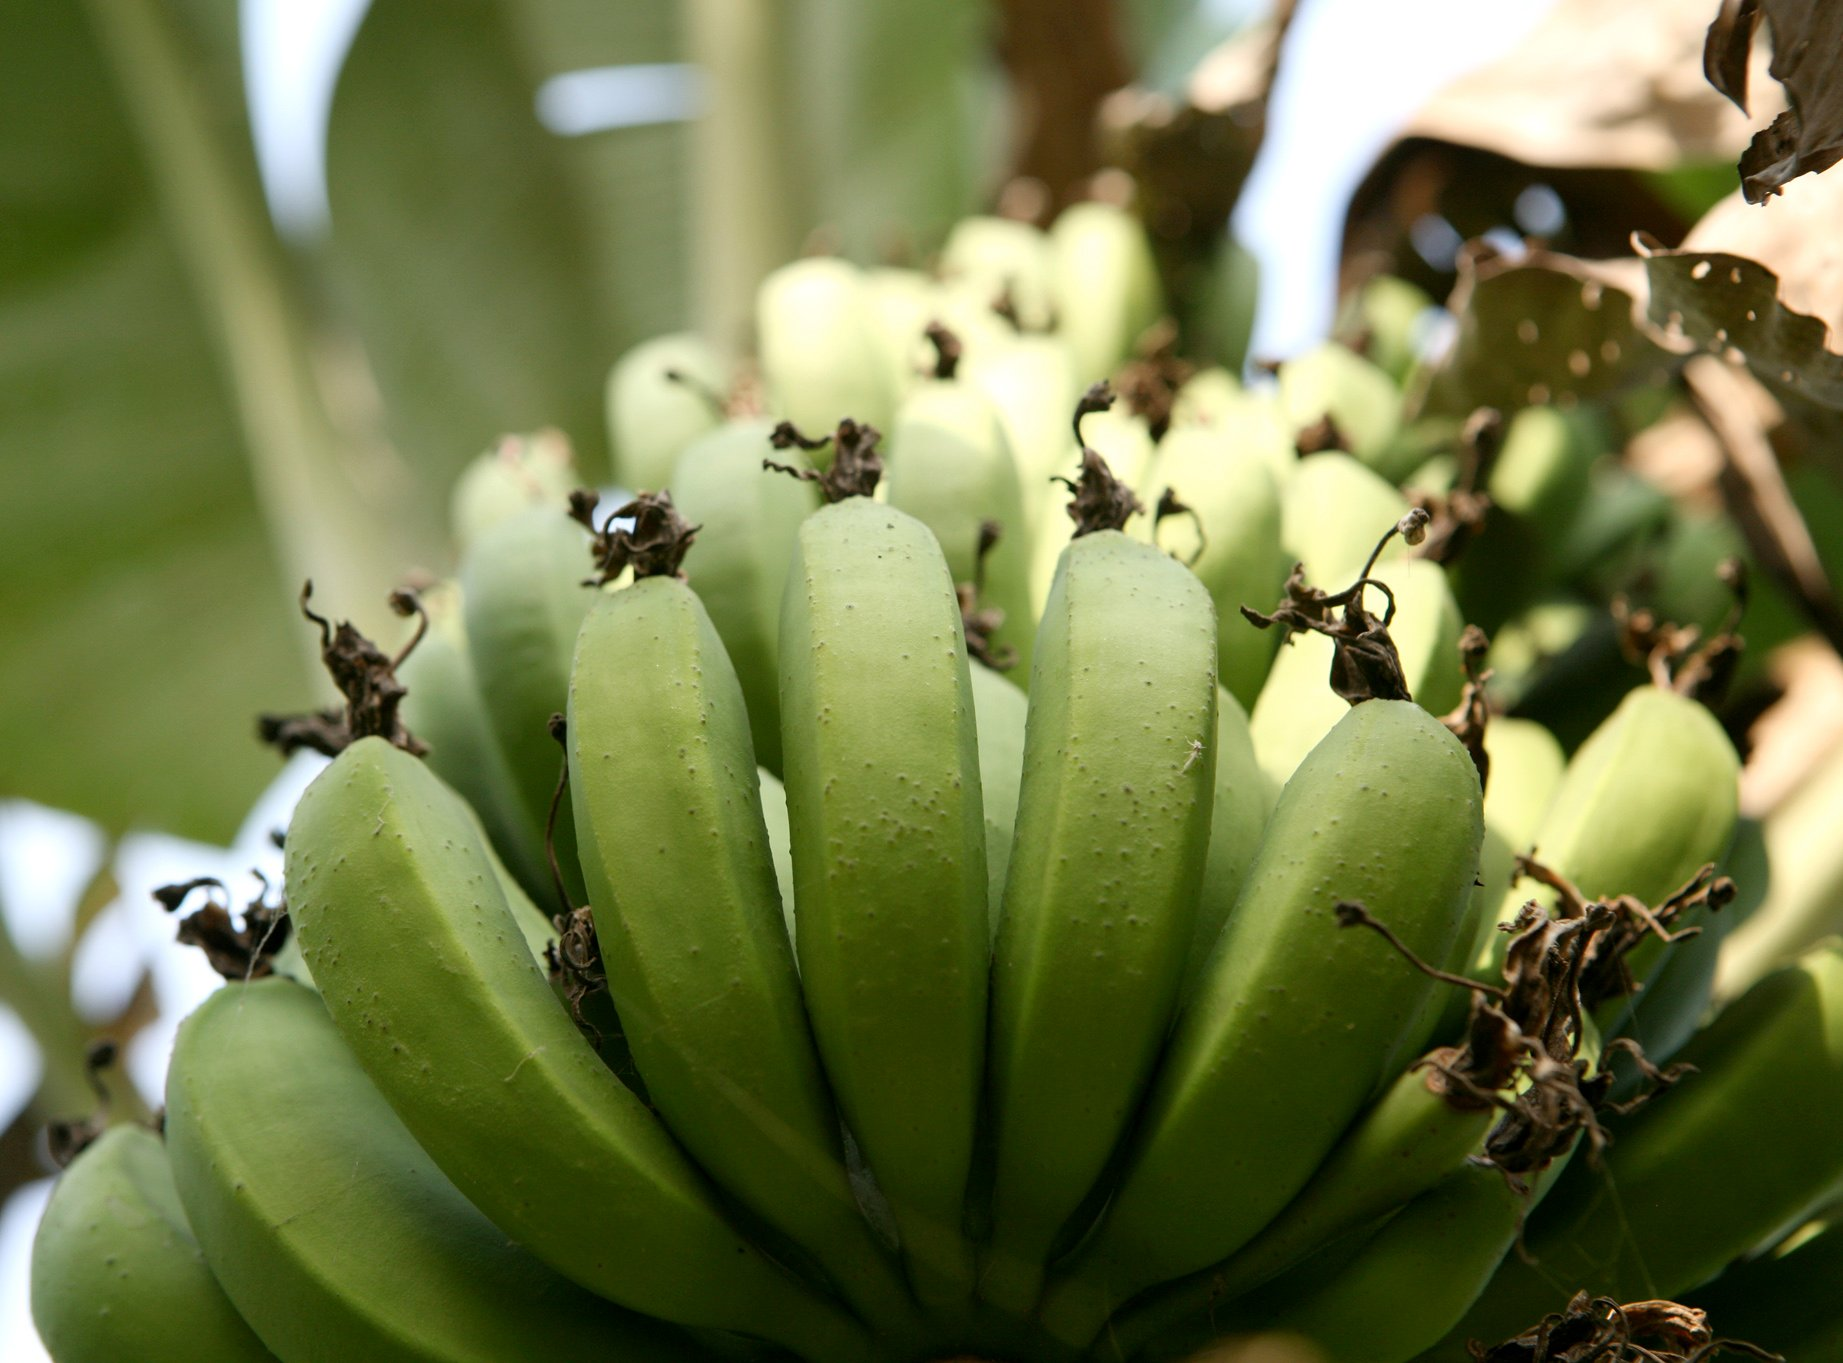 Mobile phone technology could be used to correctly diagnose and treat banana diseases